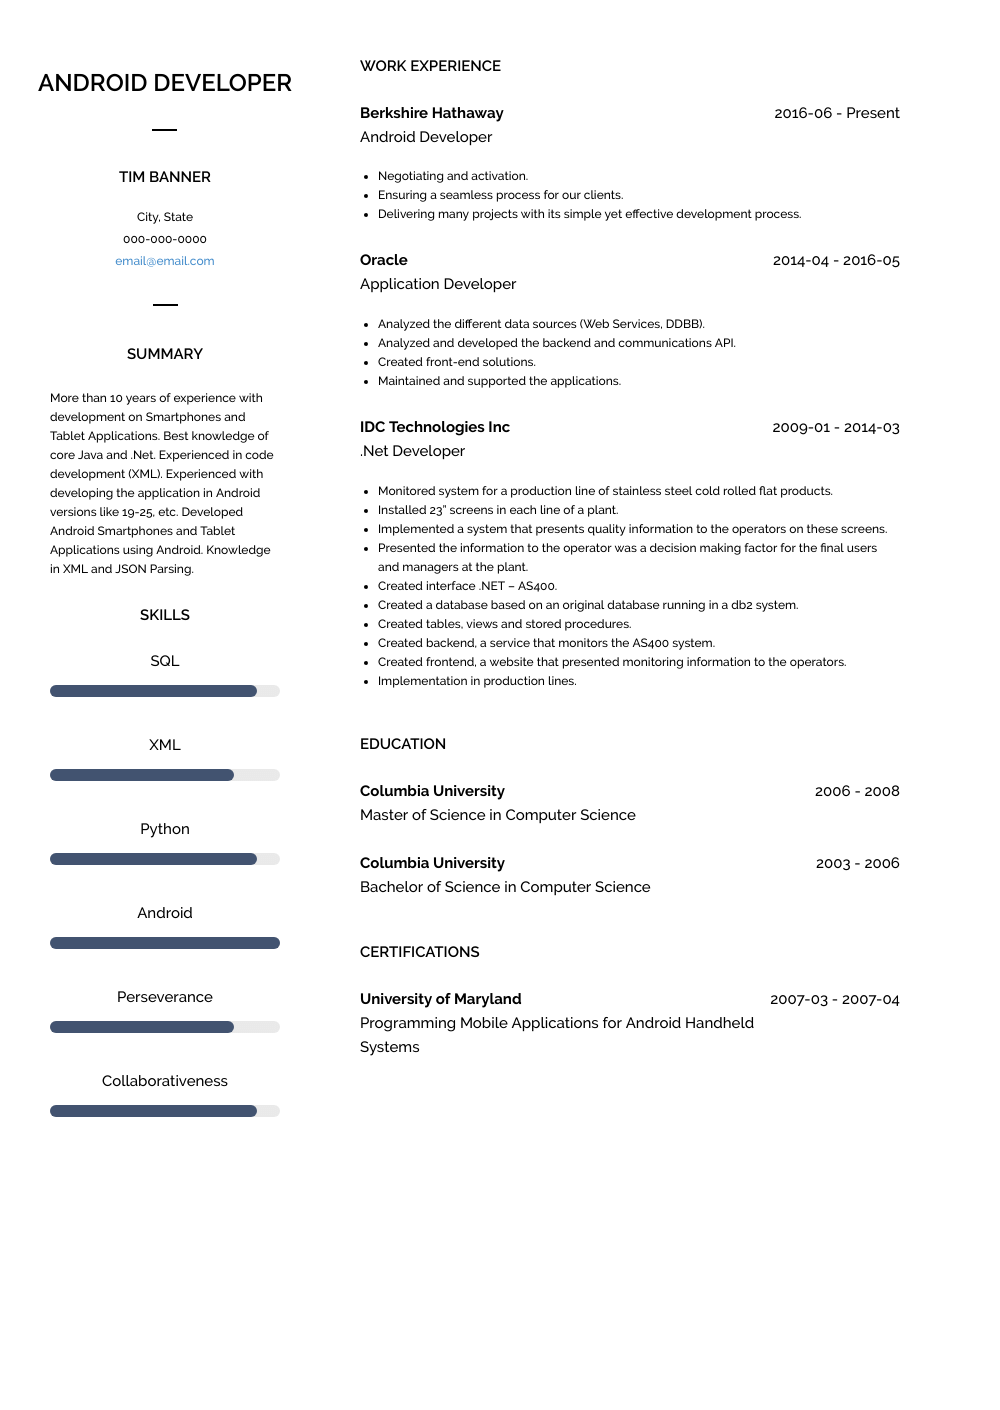 Android Developer - Resume Samples & Templates | VisualCV